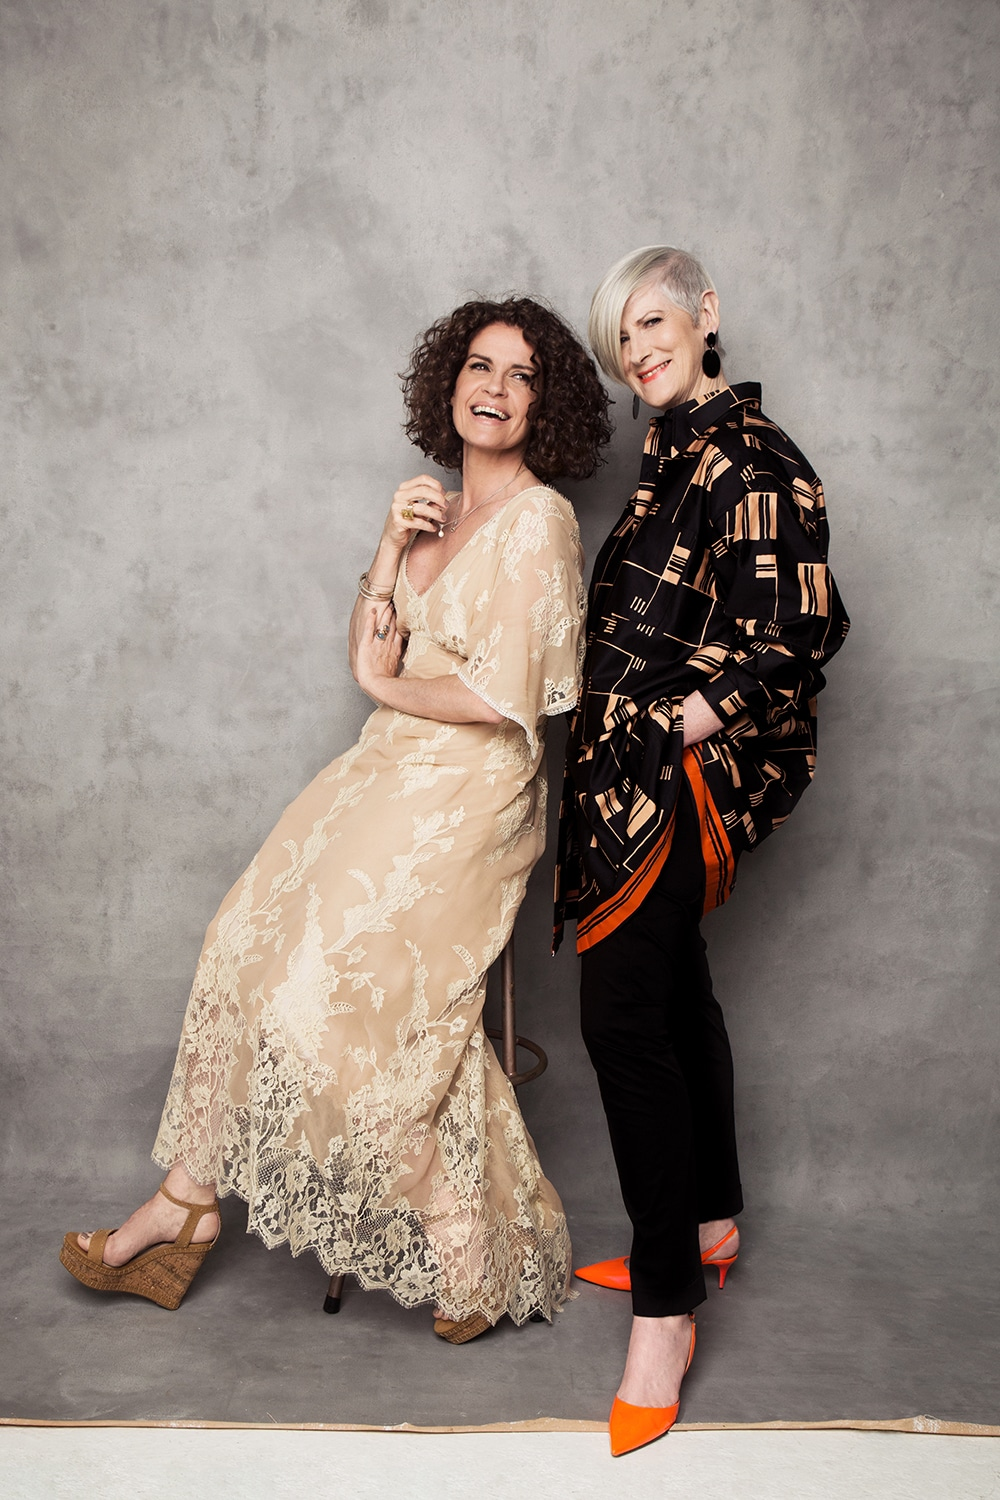 Helen Cody and Alice Maher by Barry McCall Photographer